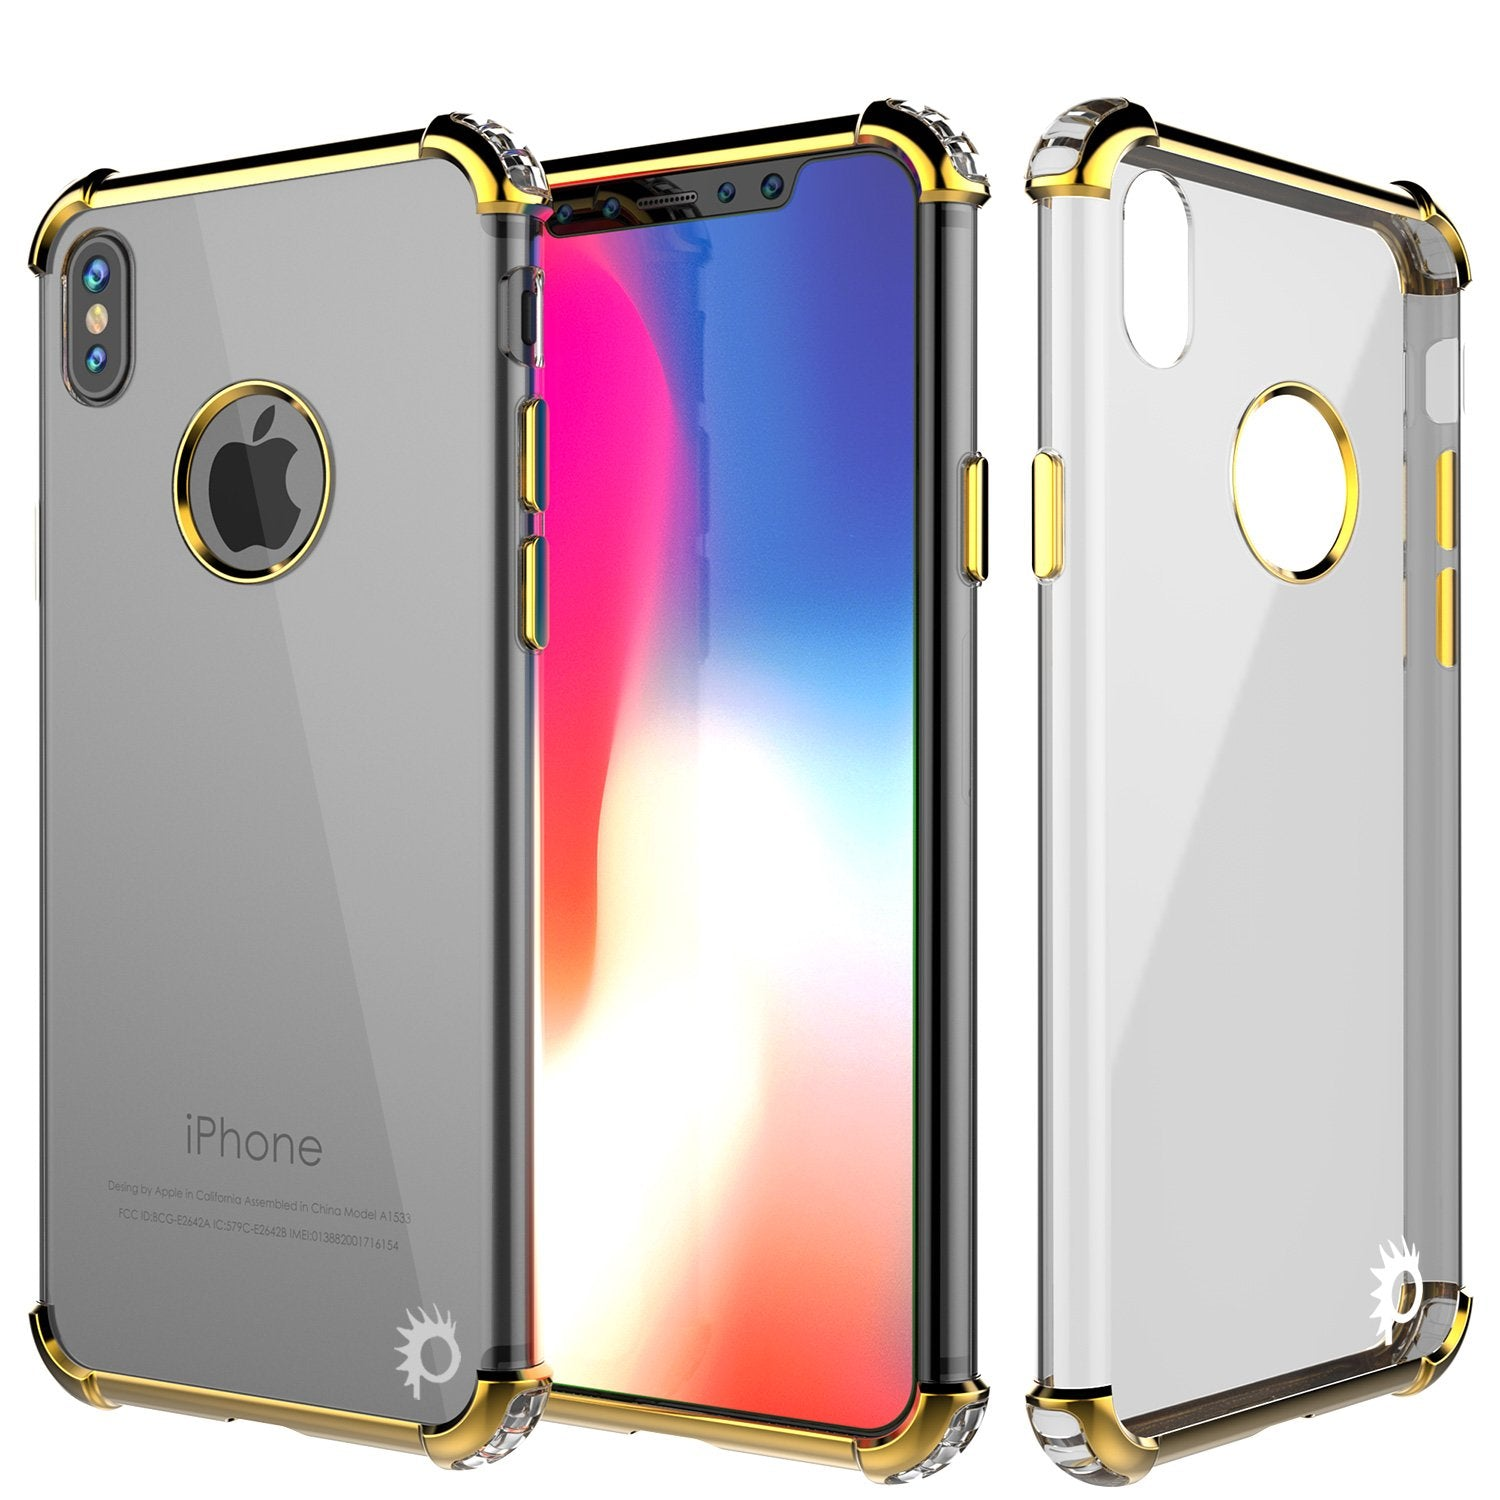 iPhone X Case, Punkcase [BLAZE SERIES] Protective Cover W/ PunkShield Screen Protector [Shockproof] [Slim Fit] for Apple iPhone 10 [Gold]